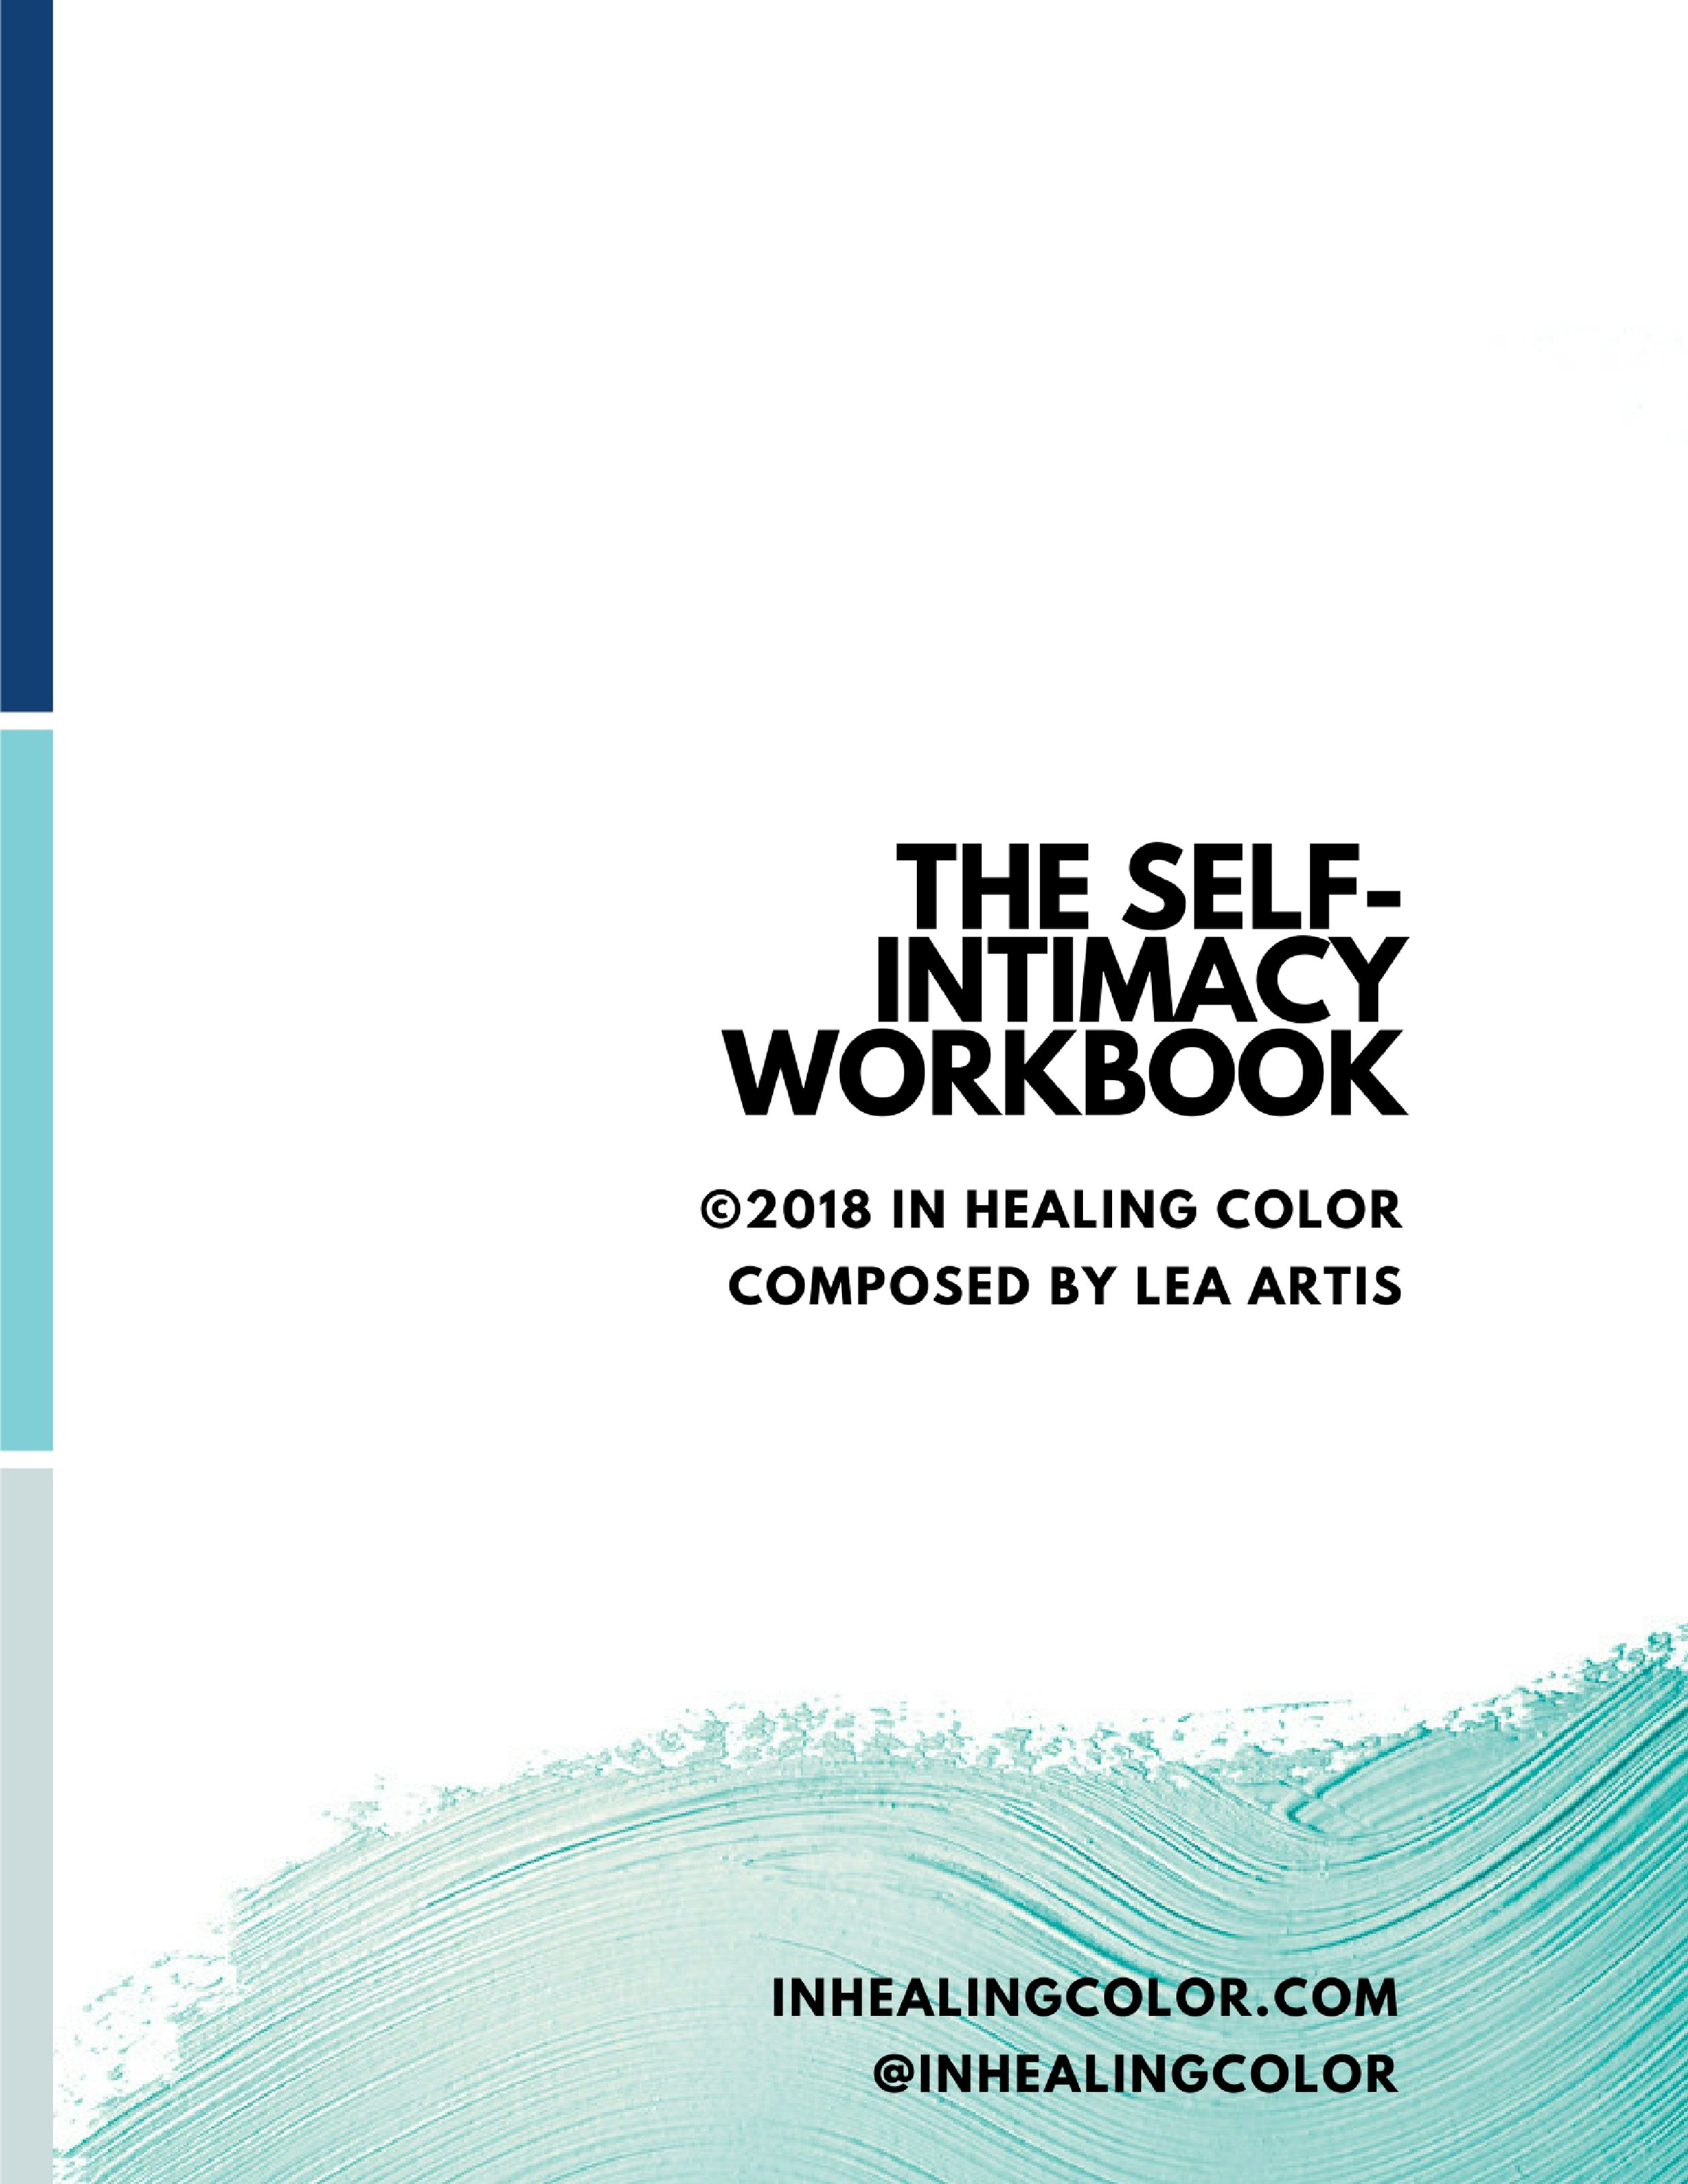 Download the Self-Intimacy Workbook from In Healing Color and healing coach Lea Artis.